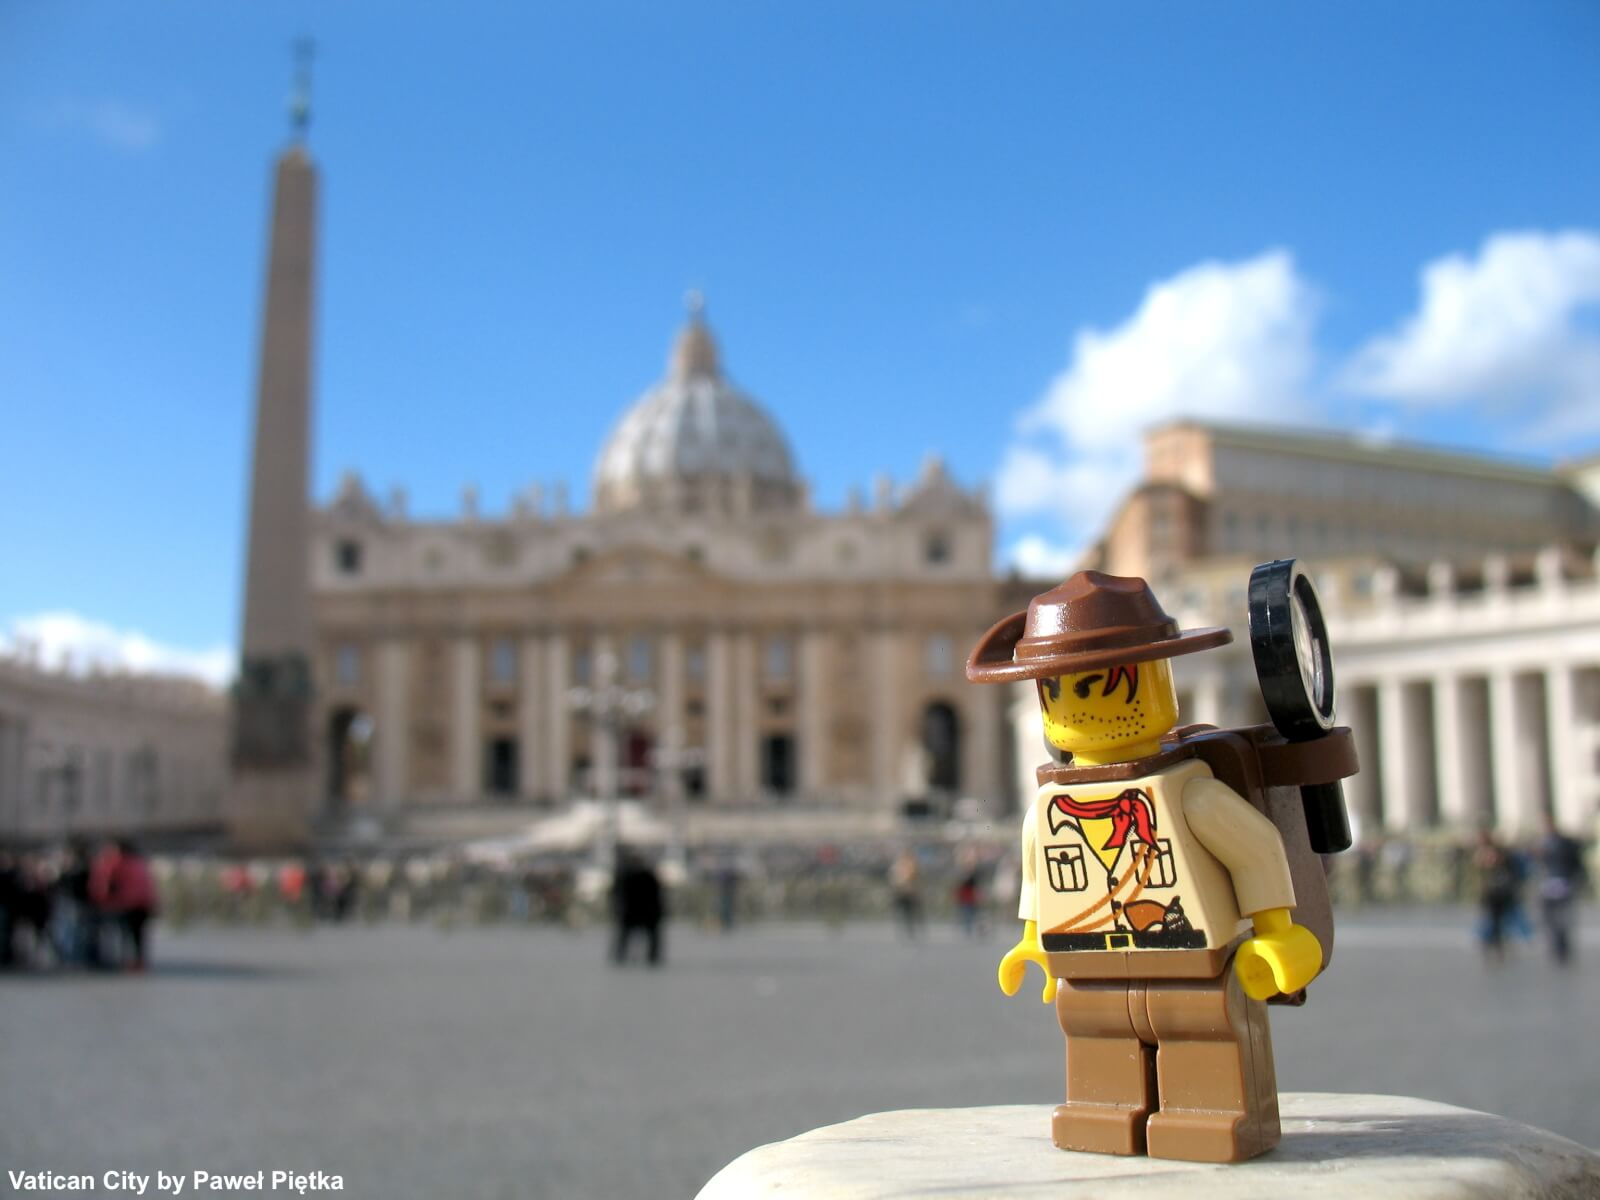 Vatican City St Peters Square the basilica and obelisk Piazza Pio XII